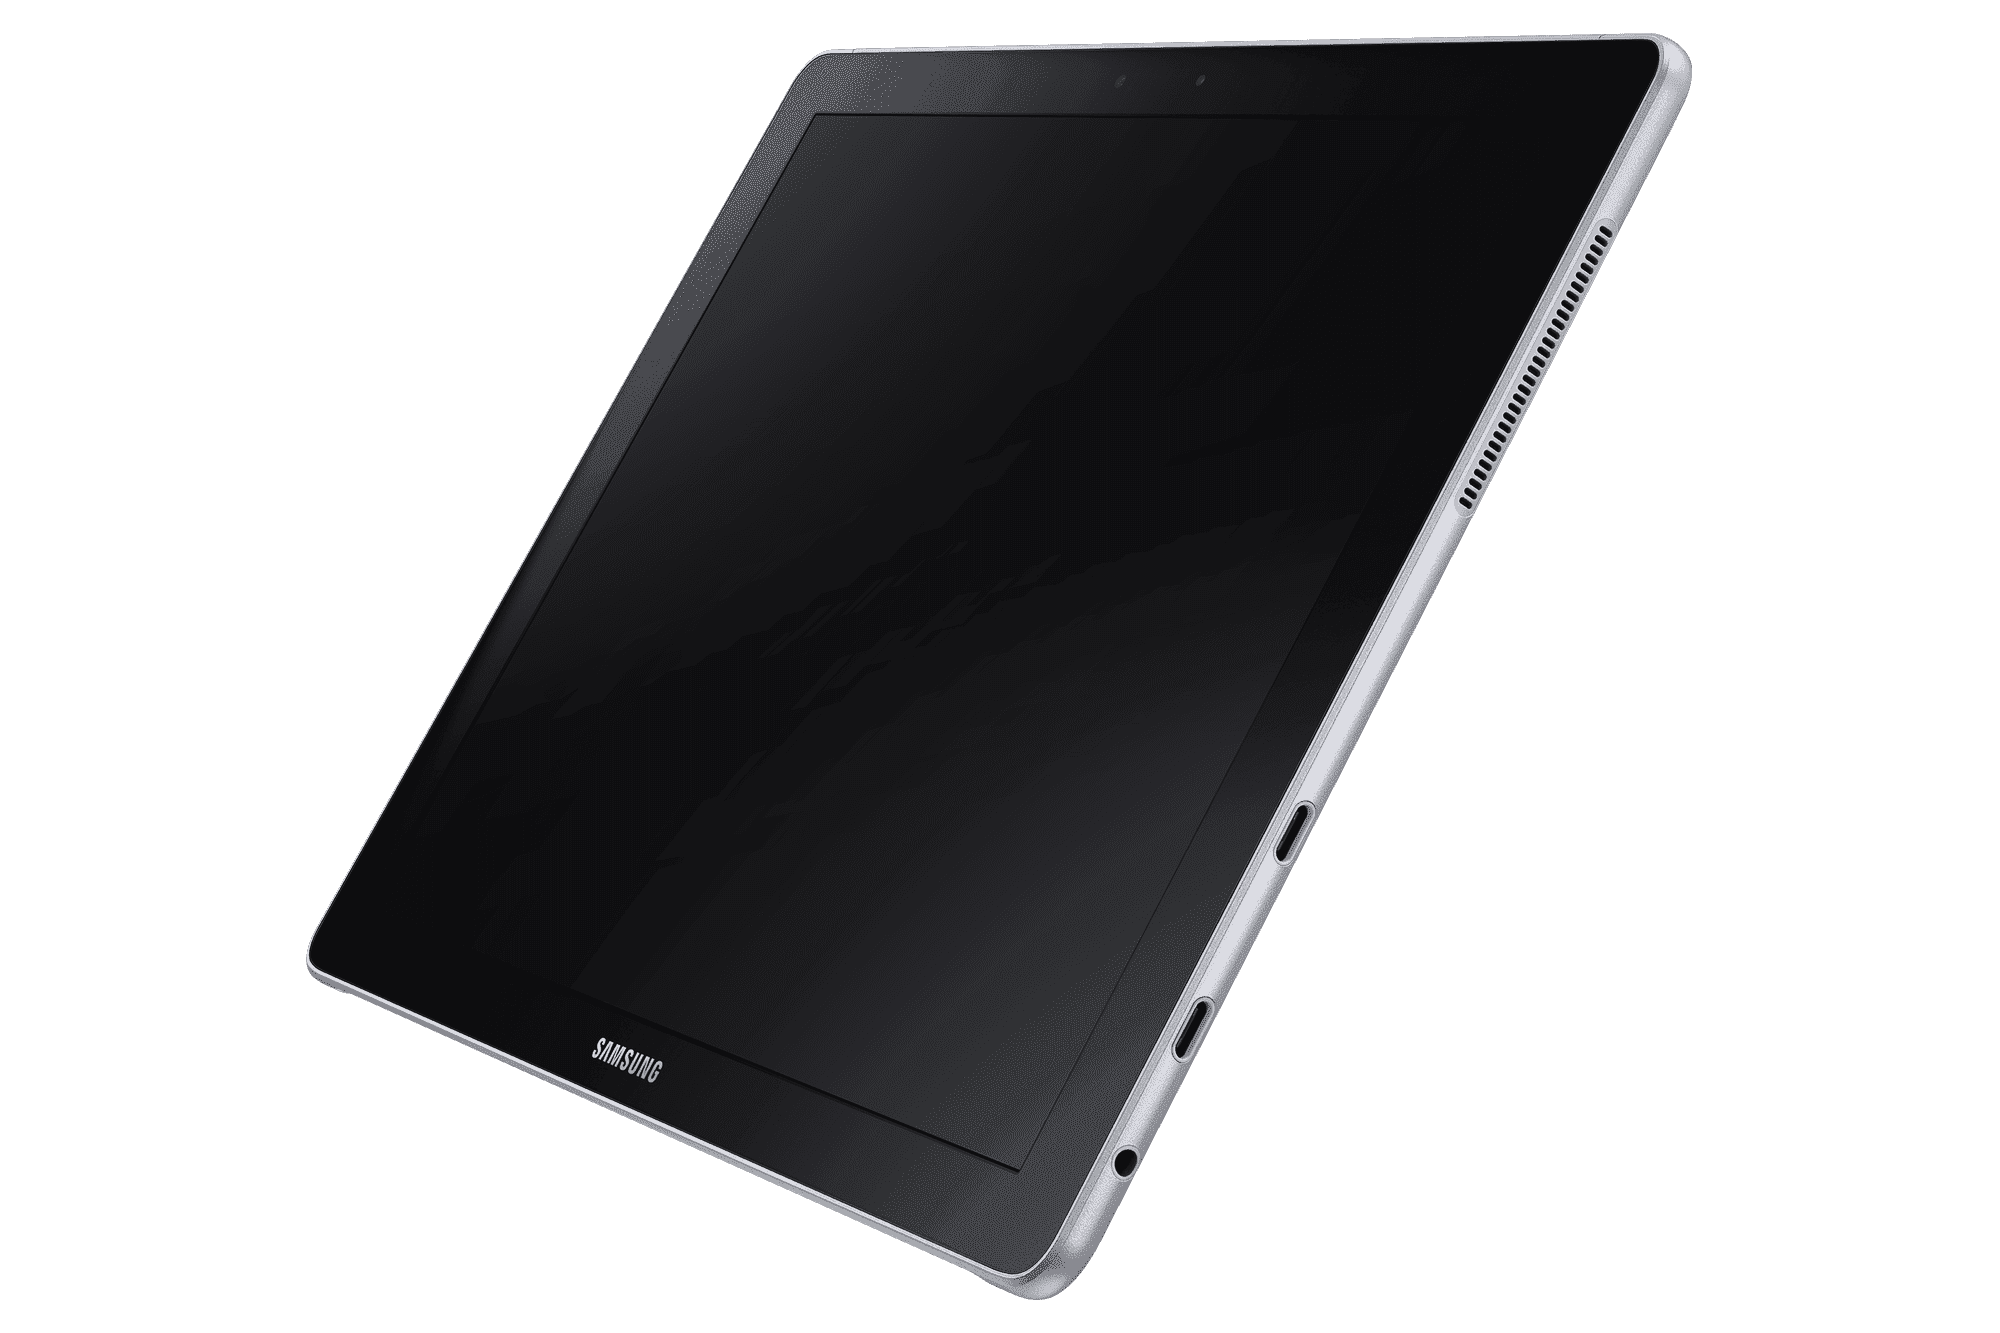 Certification suggests Samsung Galaxy Book 2 might come with Windows 10 in S Mode Samsung.png